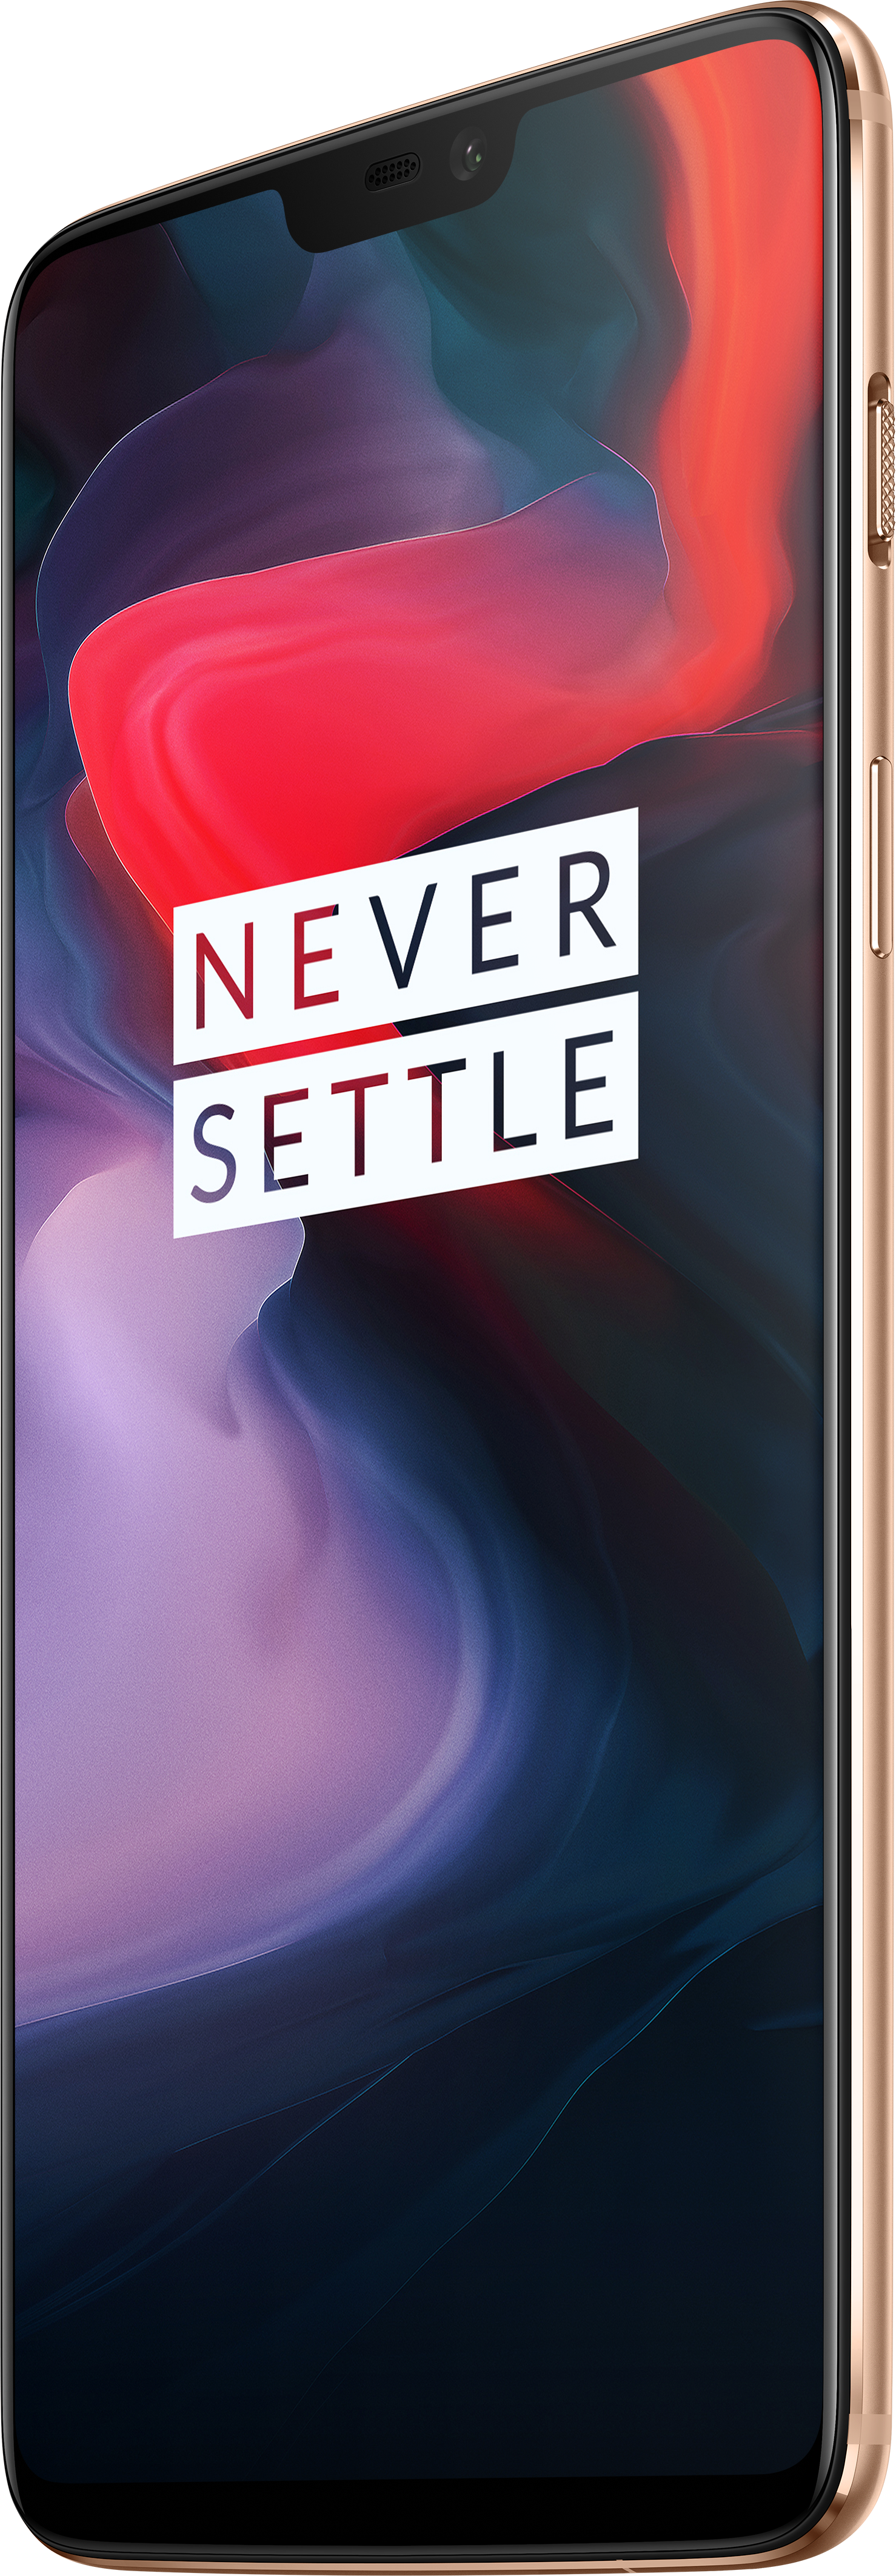 whatgear oneplus 6 review